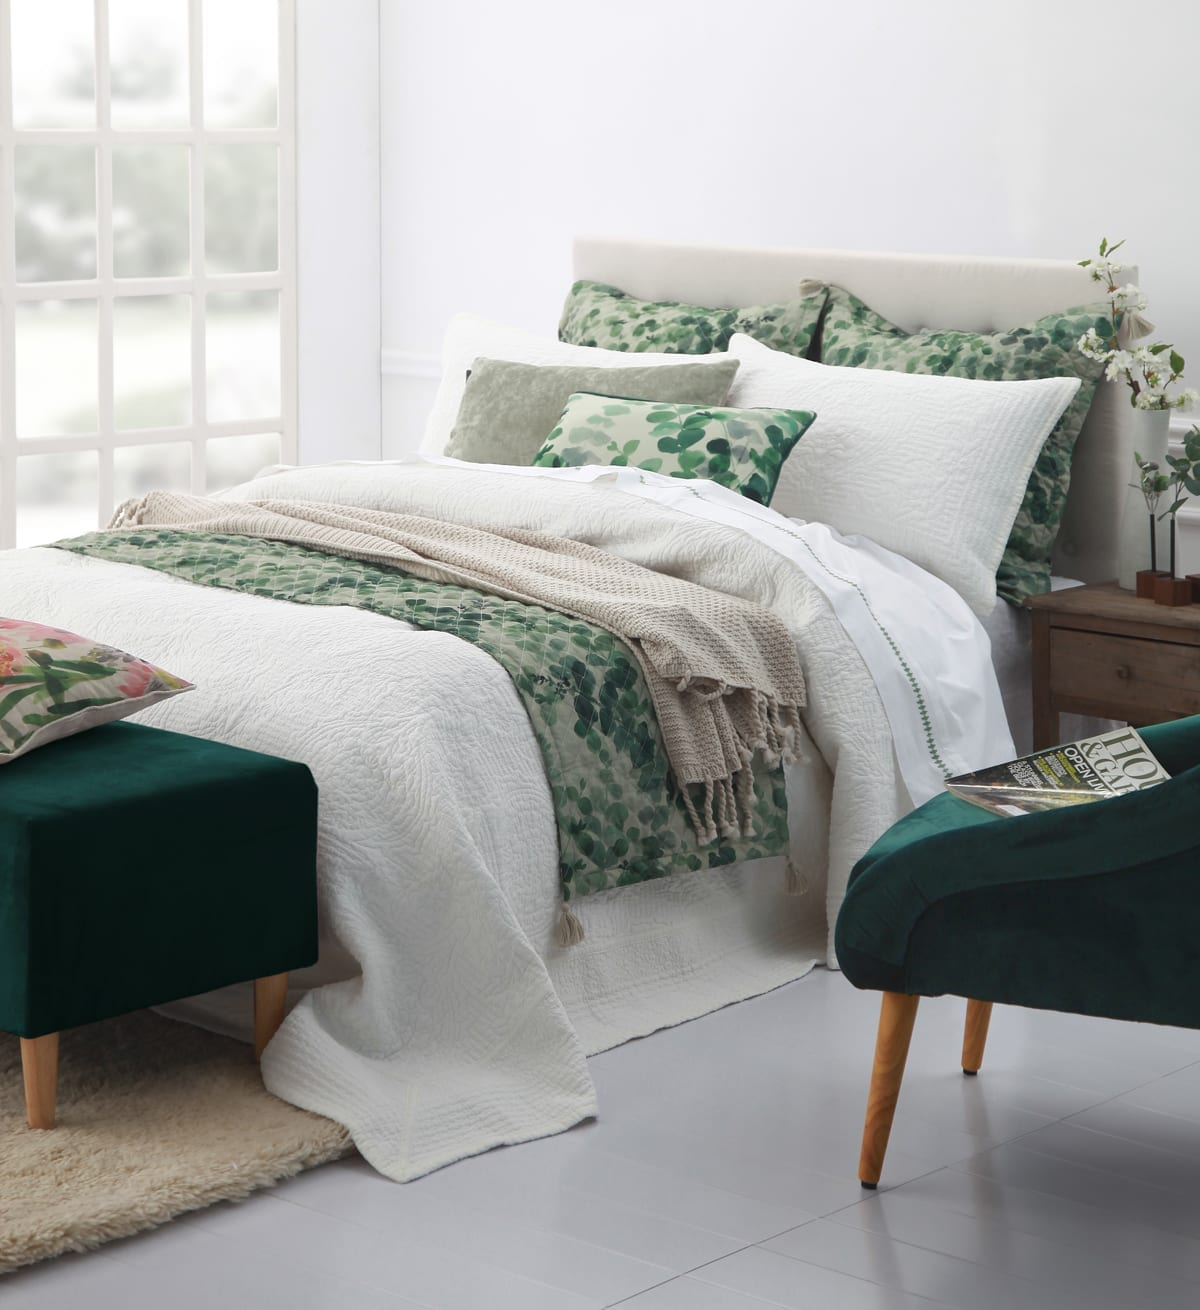 Allegra Bedspread in Ivory available at McKenzie & Willis